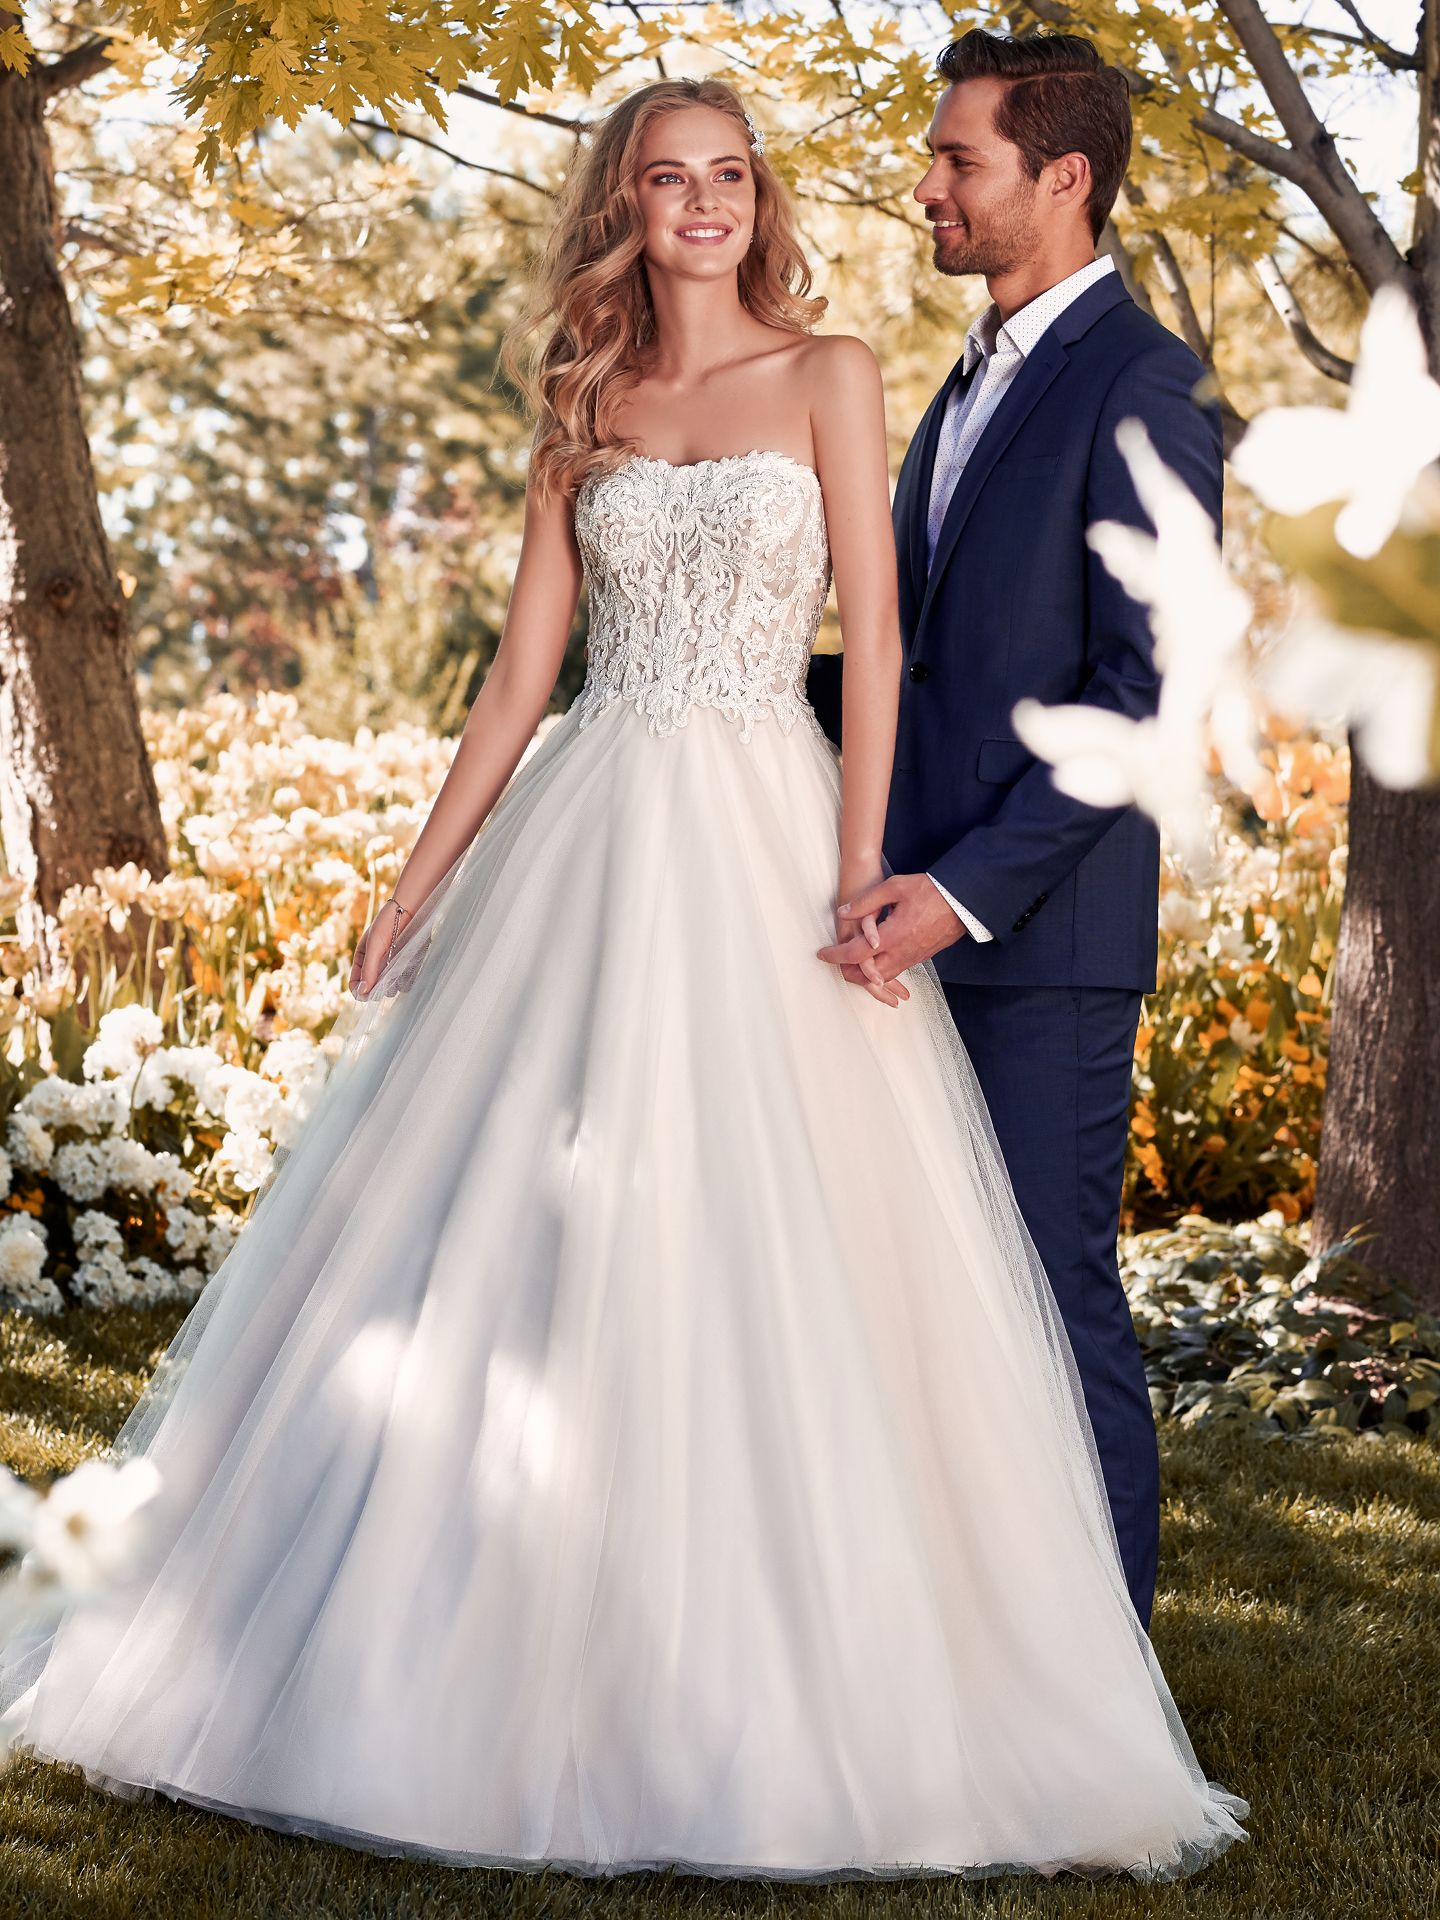 Wedding Gowns that Look Great in Photos - Lavonne tulle ballgown wedding dress by Rebecca Ingram